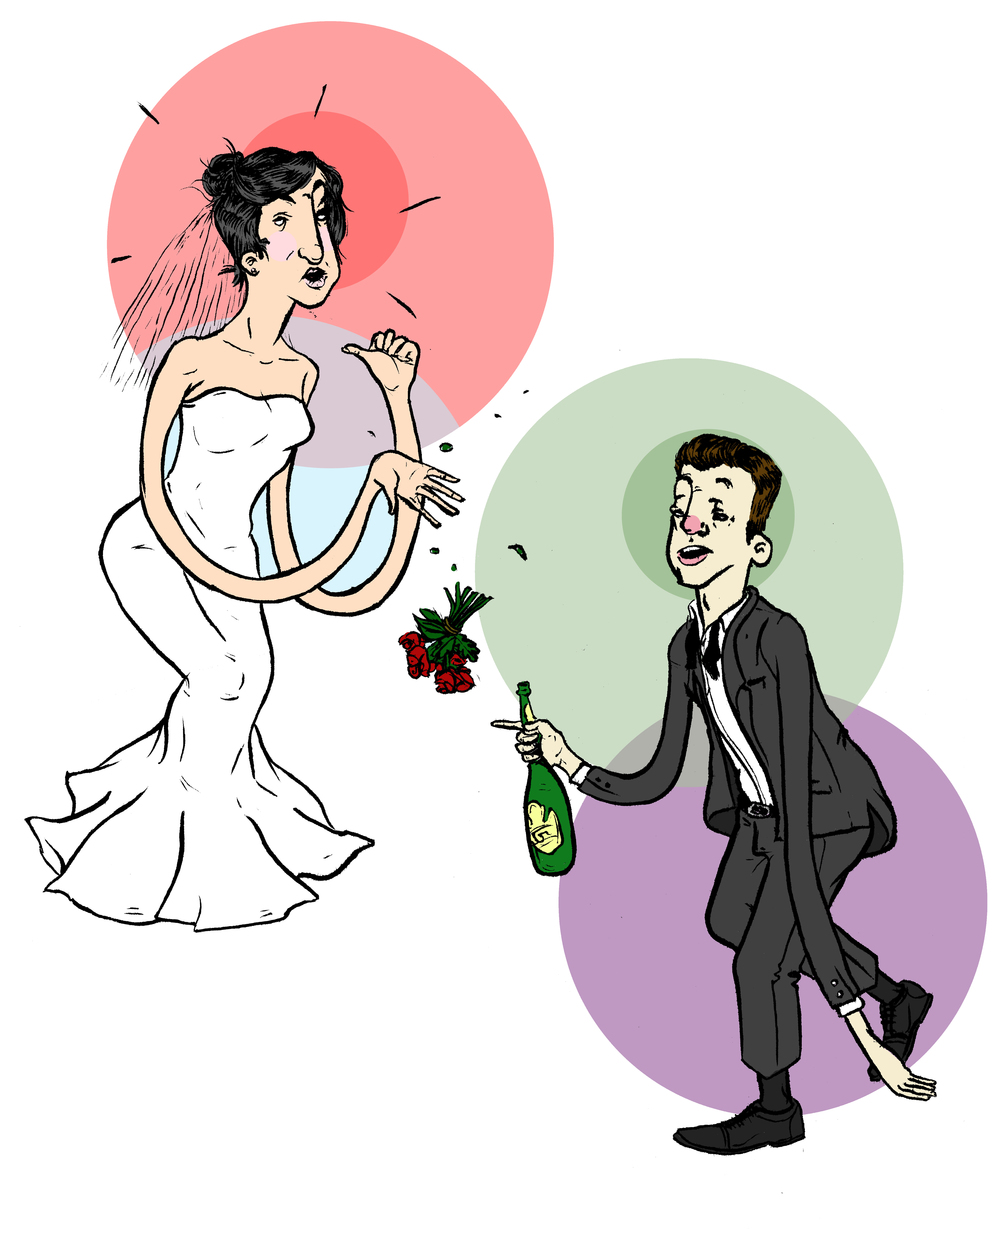 Done for an indy wedding magazine.